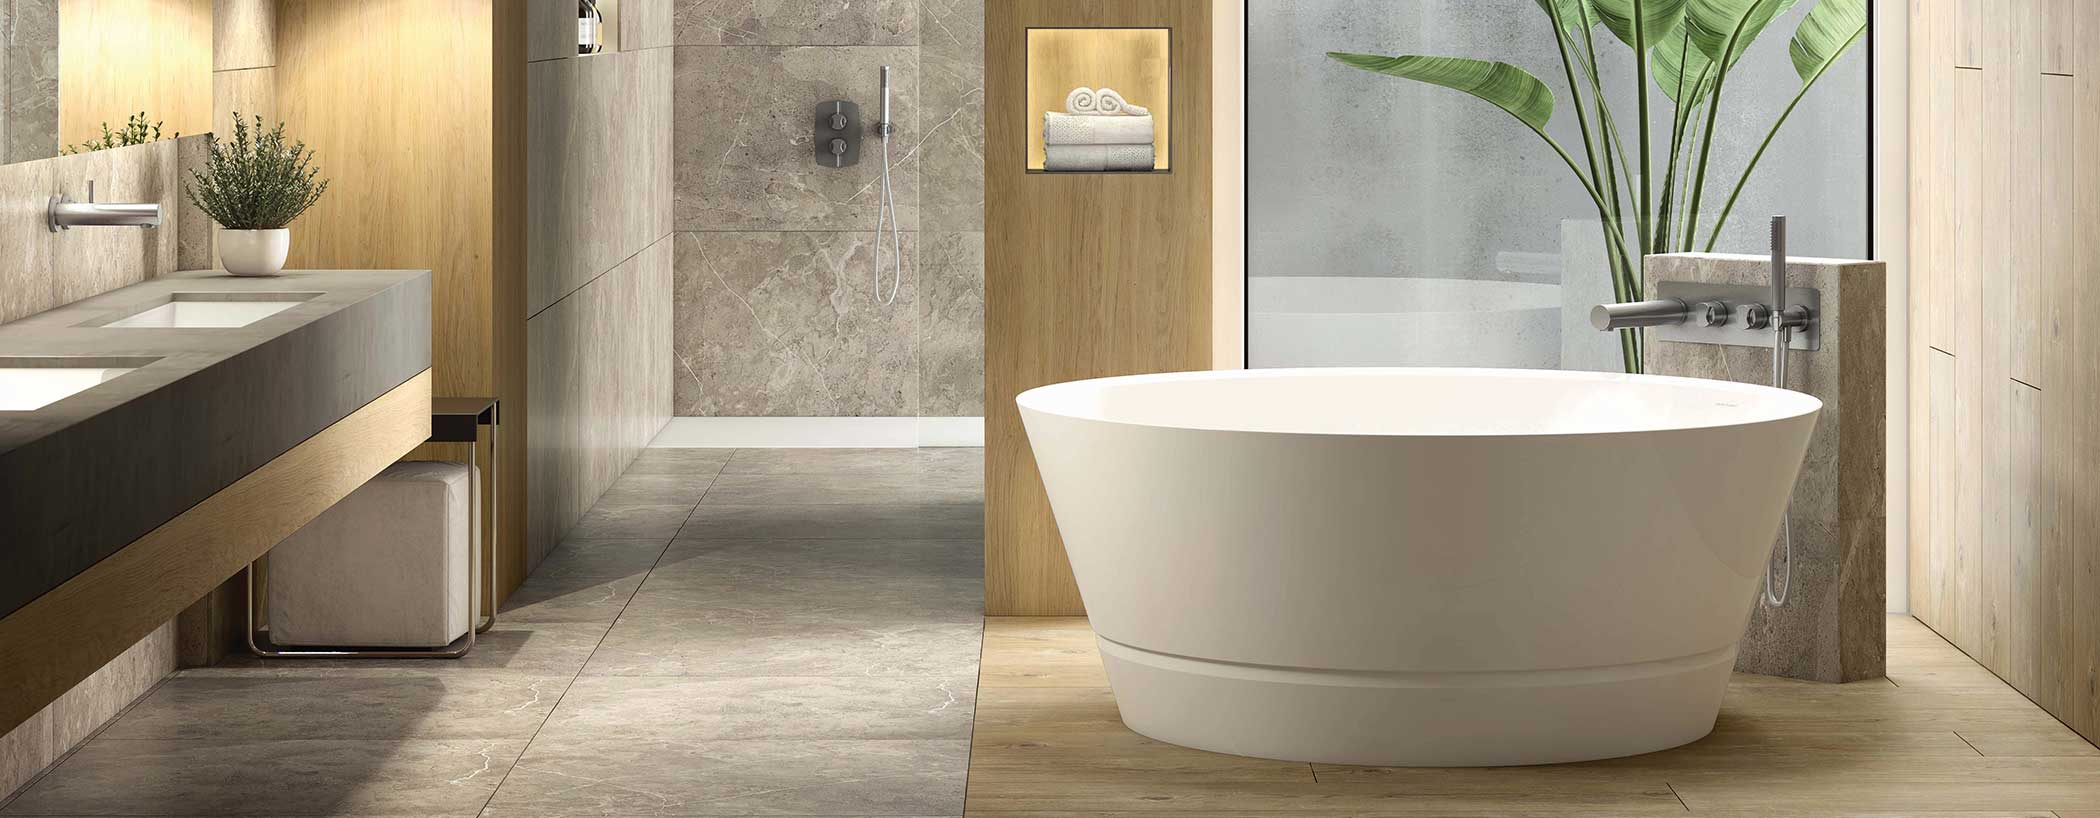 Victoria + Albert Taizu round bath. Distributed in Australia by Luxe by Design, Brisbane.